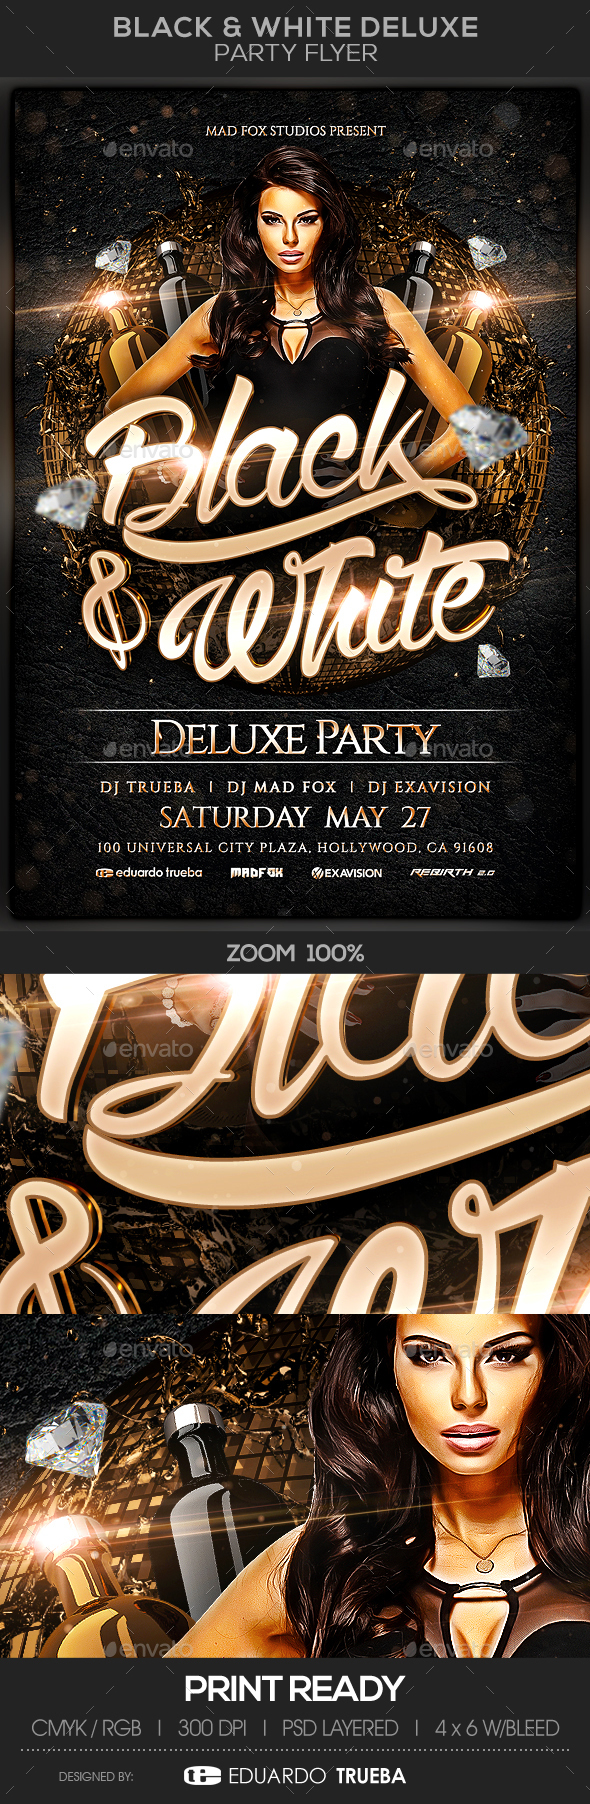 Black & White Deluxe Party Flyer - Clubs & Parties Events